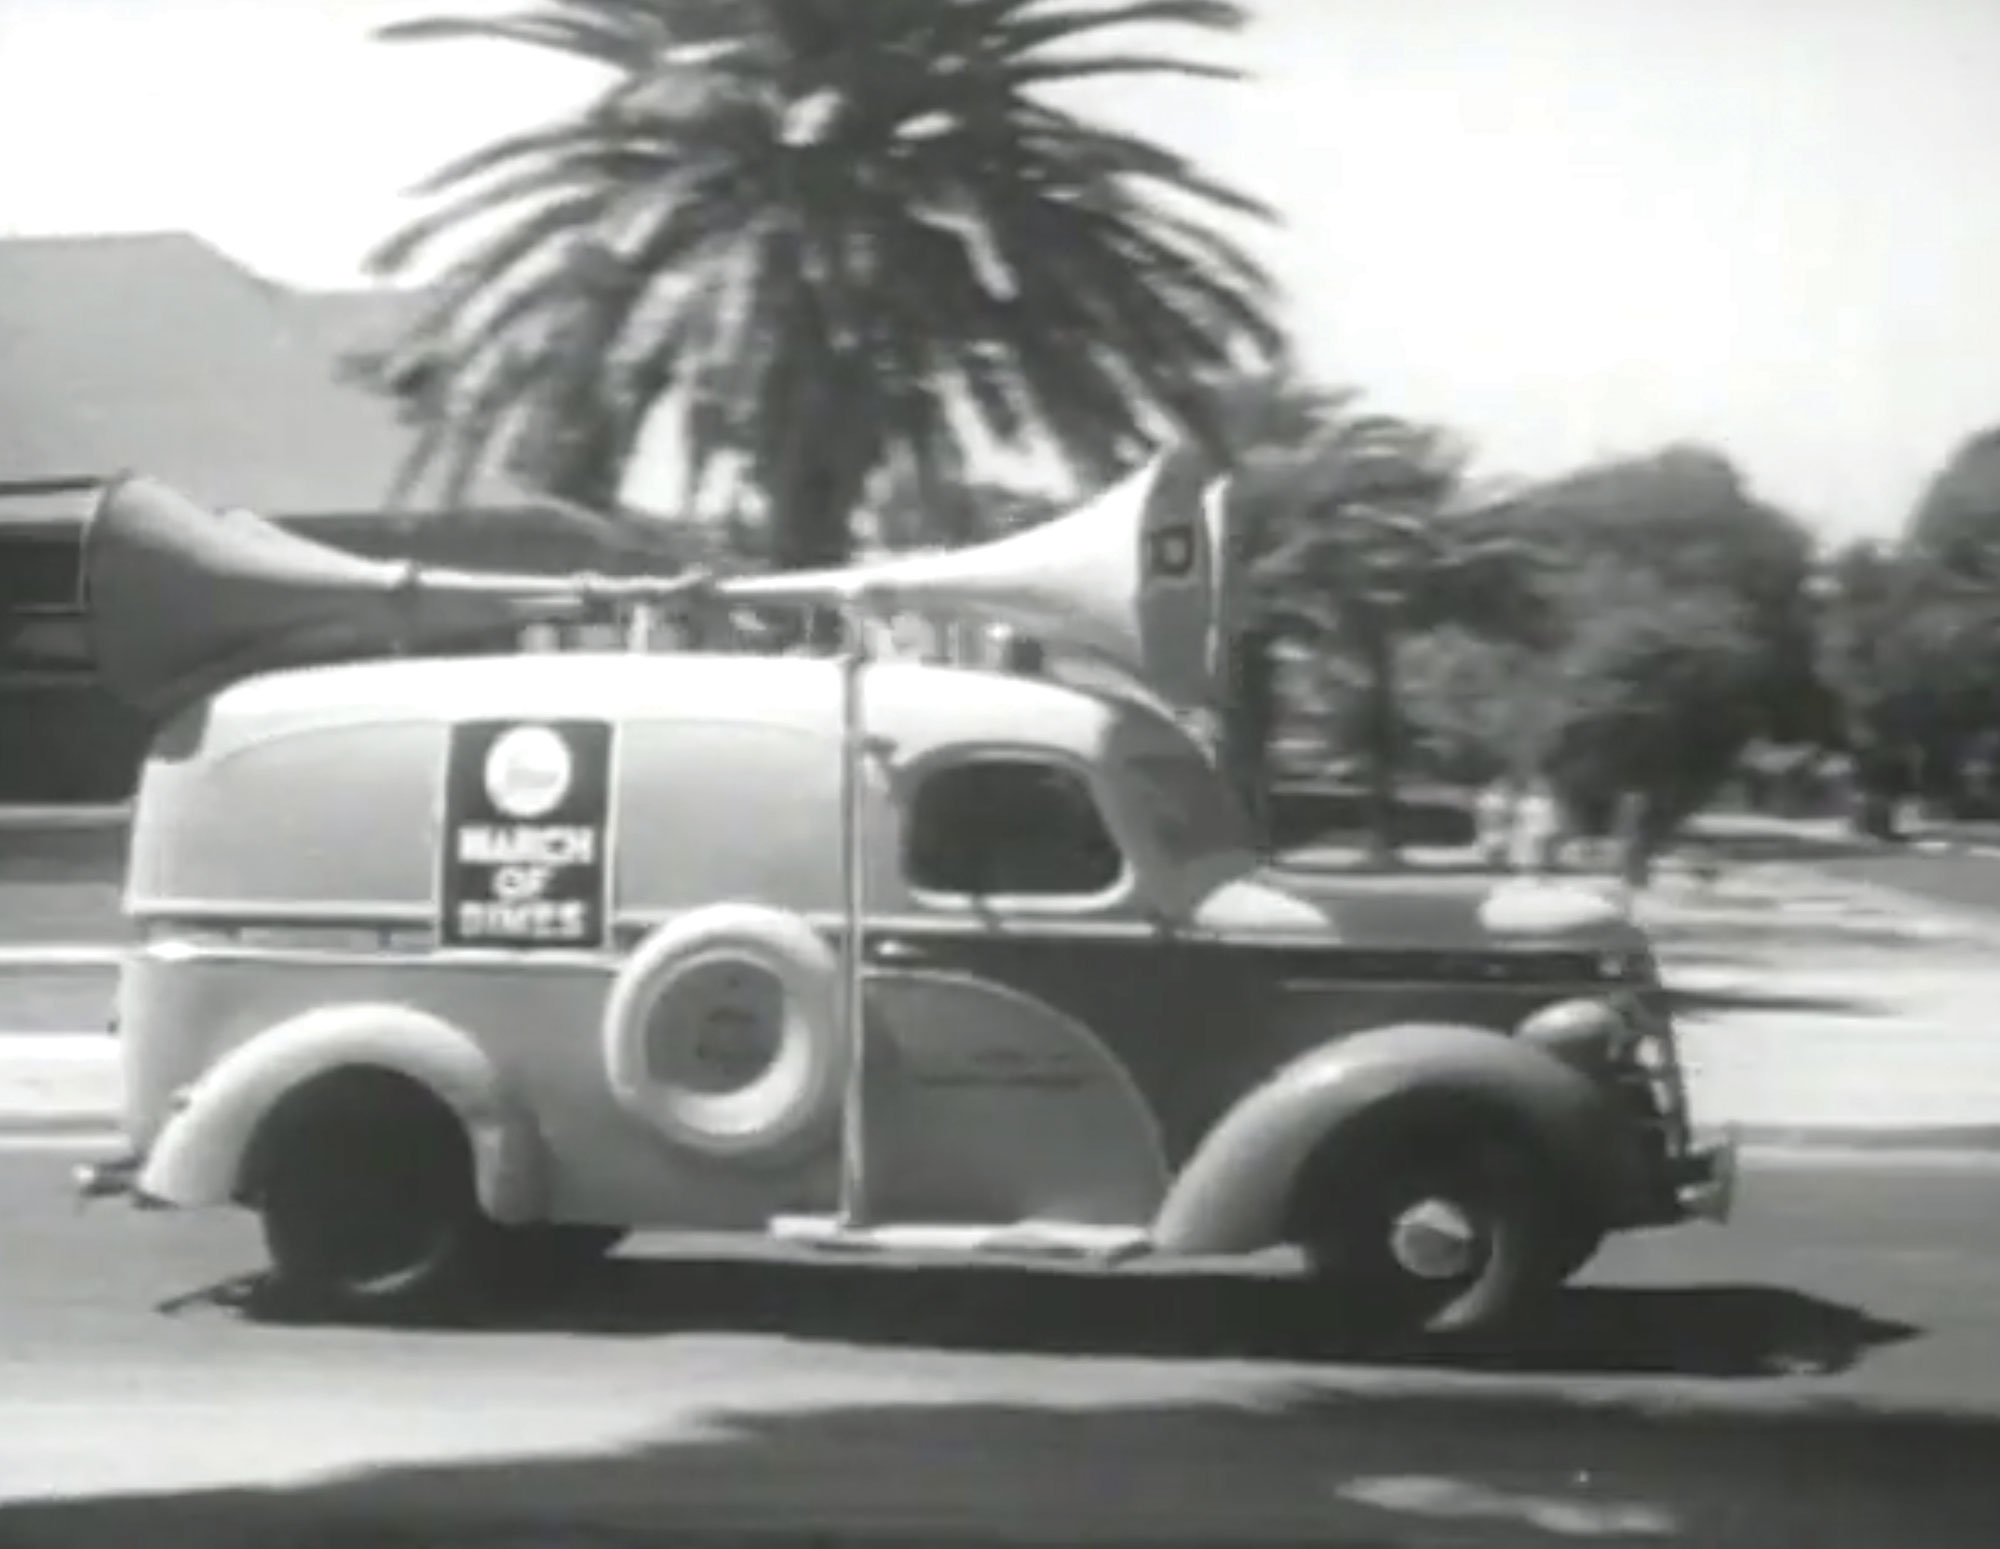 Sound trucks drive through Phoenix, announcing the original Mothers March in 1950